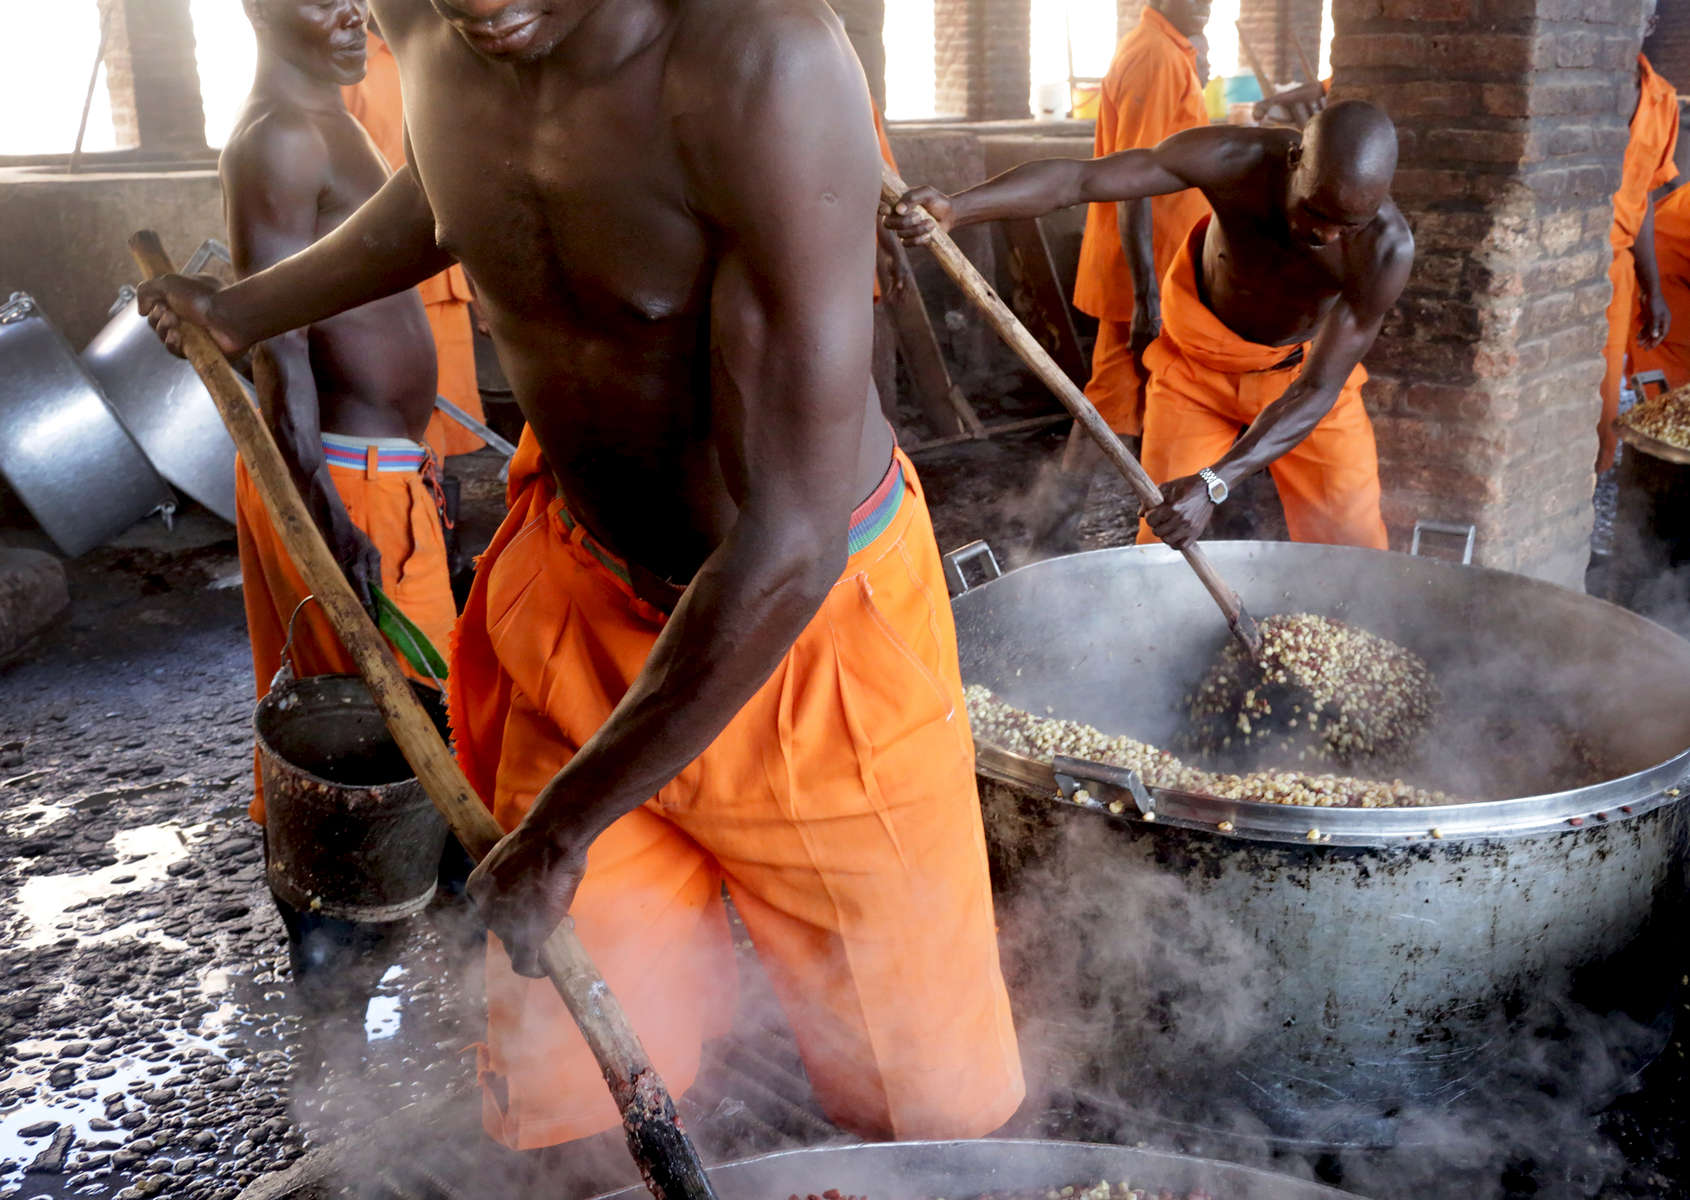 Prisoners cook corn at Rwamagana Prison in Rwamagana, Rwanda, on November 18, 2017. All of Rwanda's prisons use their prisoners' waste - in addition to that of cows - to fuel their kitchens via biogas. At Rwamagana, biogas is used to cook corn, and peat cooks rice and beans. Many prisoners say they can usually tell when biogas is used due to the lack of smokey flavor in food. Nearly half of all Rwandans live in poverty, relying on small-scale farming for survival without gas or electricity. With so many women and children spending hours of the day foraging for wood used for cooking and light, often damaging their eyes, lungs, the forests and atmosphere, a little inventiveness helps. Enter cow and enter pig — not just as a source of food, but also the heat needed to cook it. Or more specifically, their poo — the fuel fed to a biogas digester, a tank that coverts organic waste into methane. Photographs by: Yana Paskova